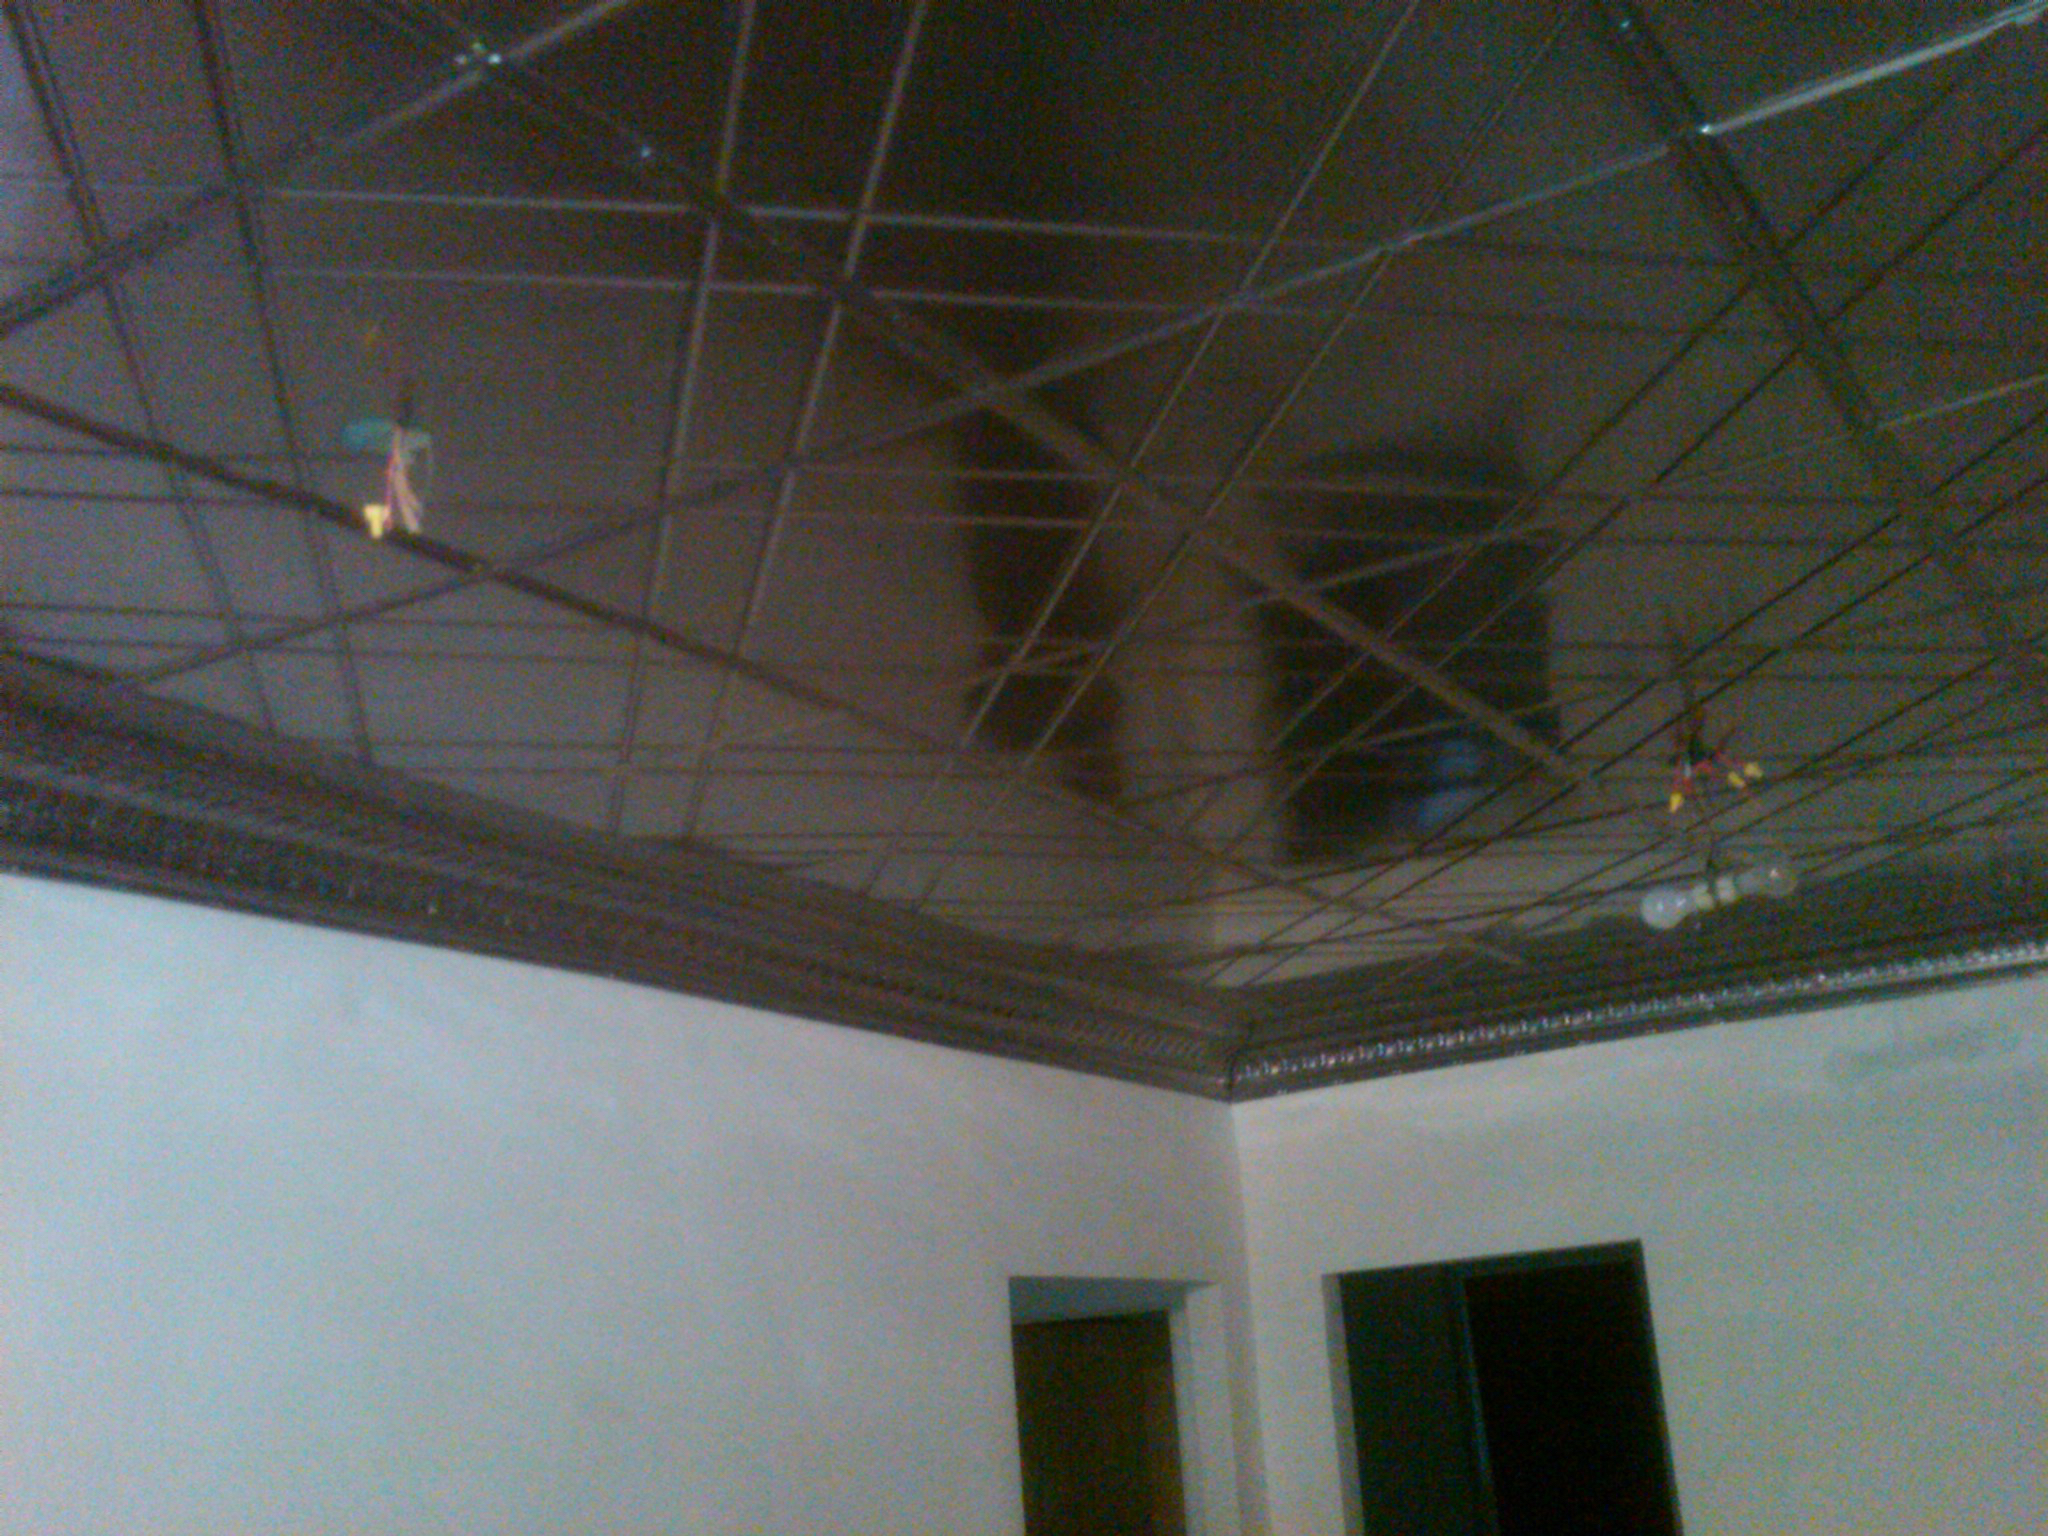 Residential abingdon construction inc tin ceilings installers if youre searching for the best tin ceiling installer for your home look no further abingdon construction provides prompt meticulous and professional dailygadgetfo Choice Image